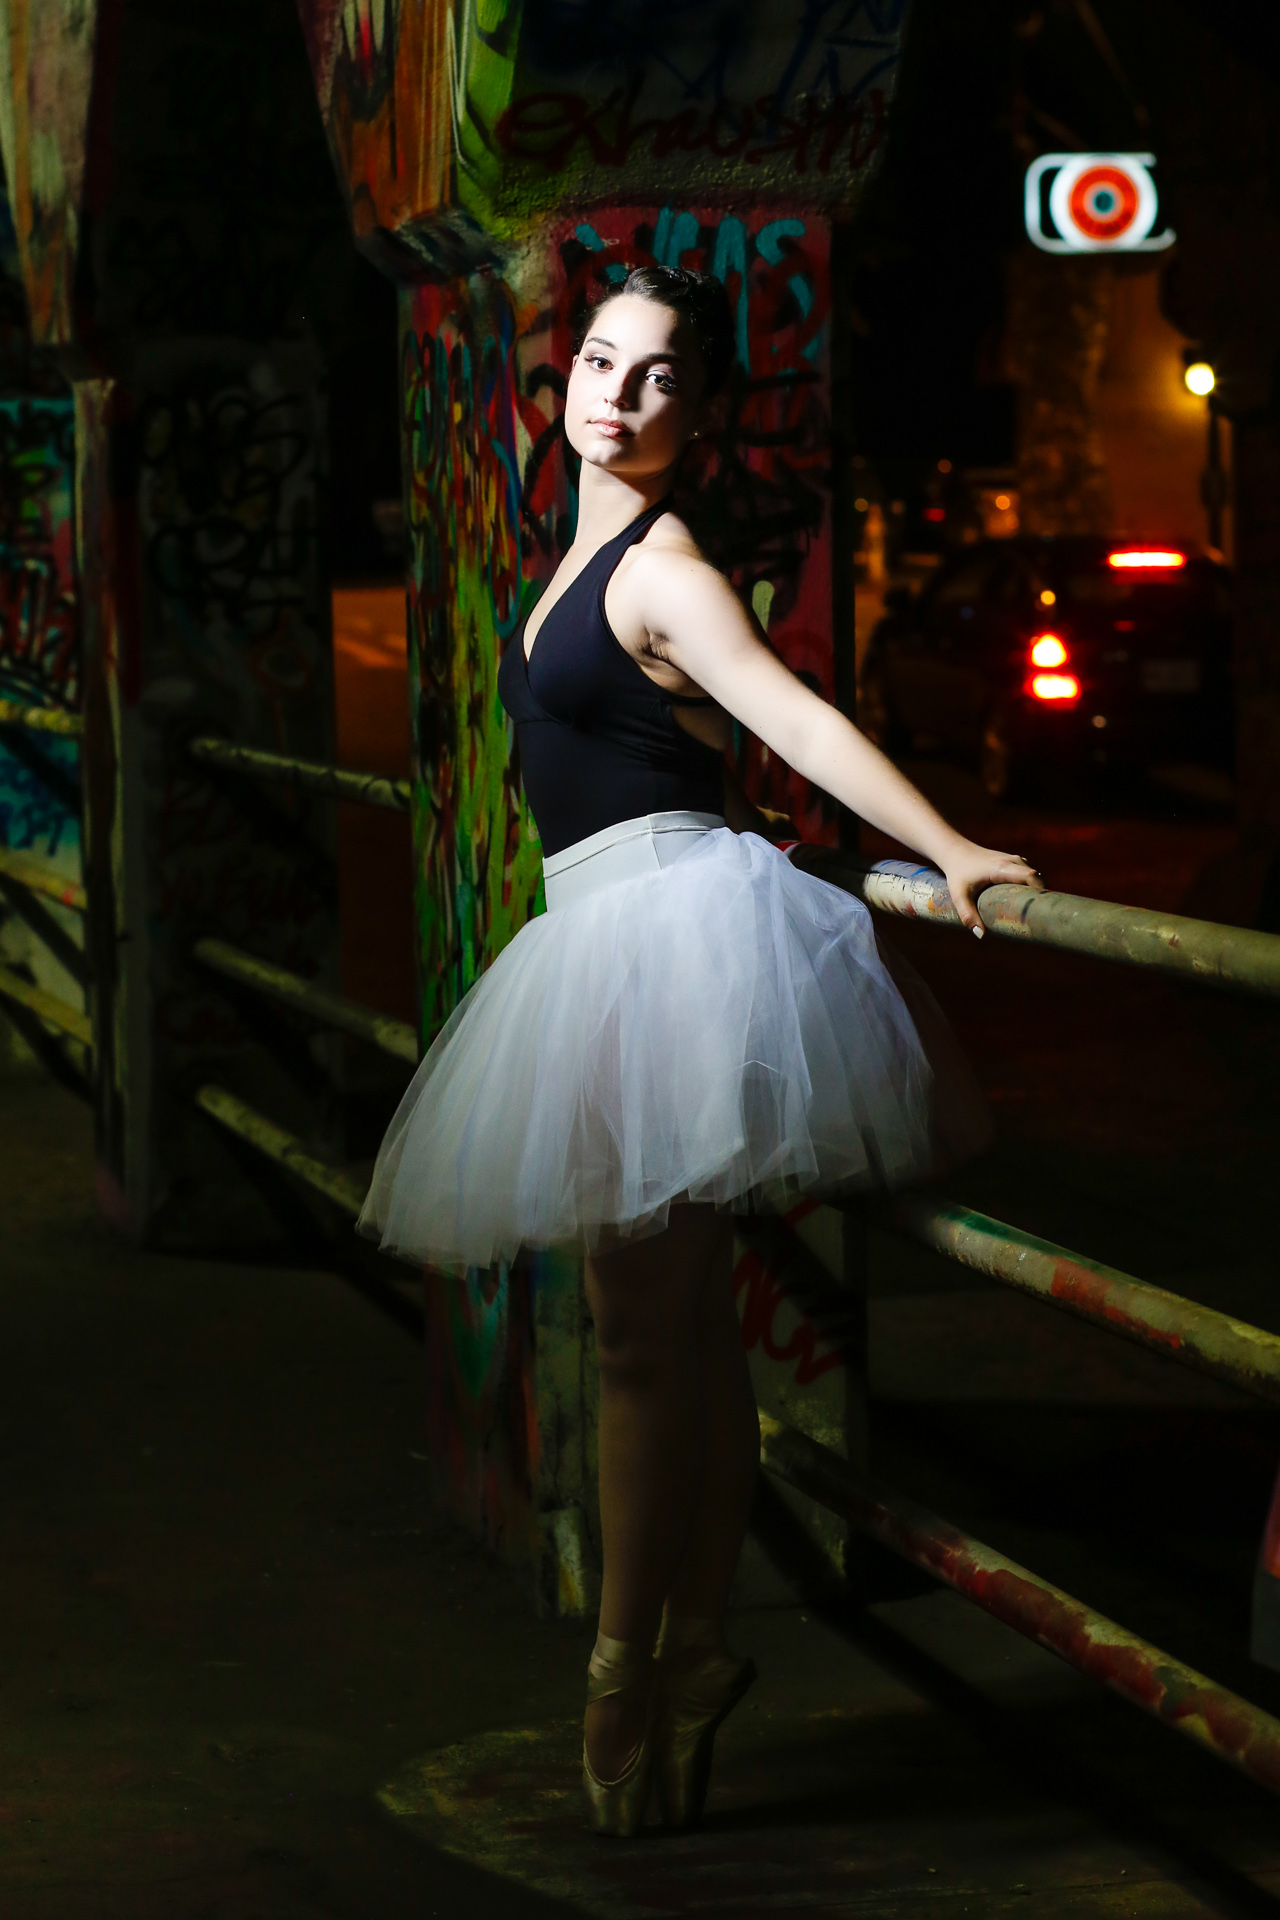 Ballerina dance pictures taken at Krog Street in Atlanta, GA. This look was inspired by Misty Copeland and her white tu-tu and black leotard. The  High School Senior session was full of dance poses and dramatic lighting. Images captures with Urban Flair Photography, Starr Petronella